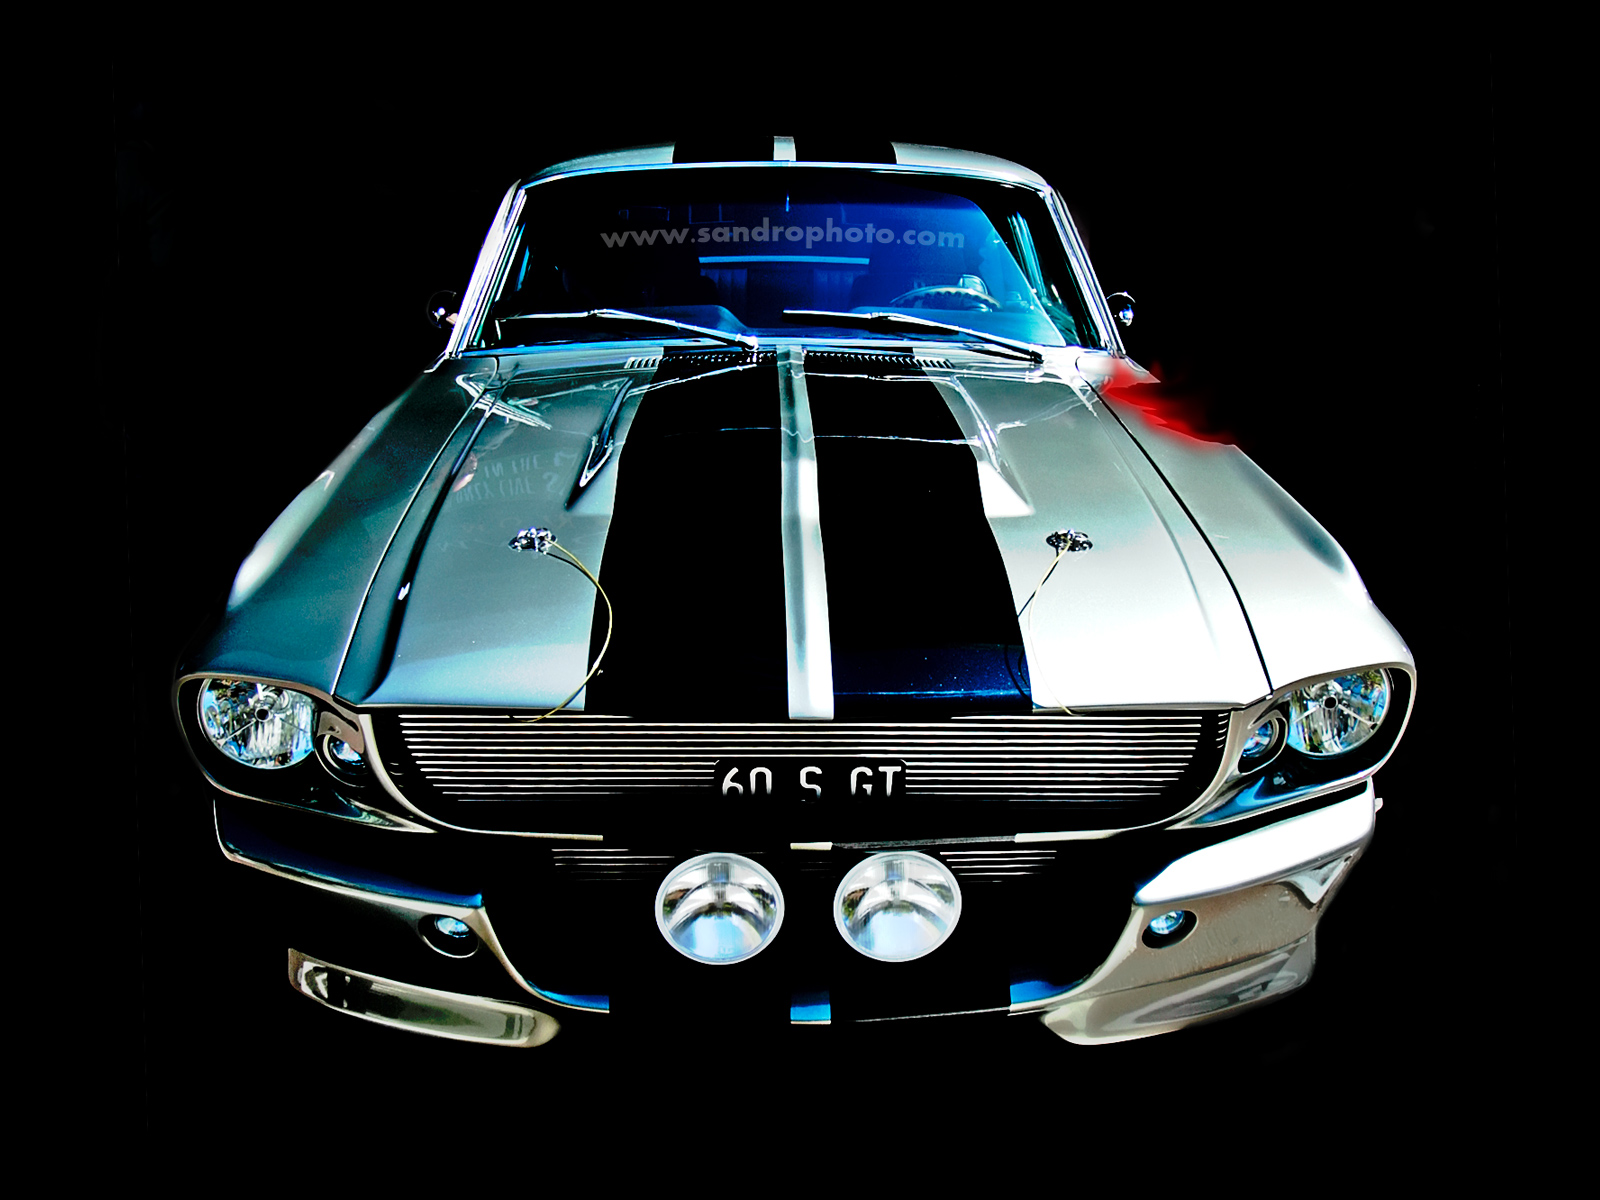 http://4.bp.blogspot.com/-M_CNuSfVe5k/URy39mgS7vI/AAAAAAAAAEs/wZAIxIshl2I/s1600/Muscle+car+wallpapers+for+desktop+3.jpg